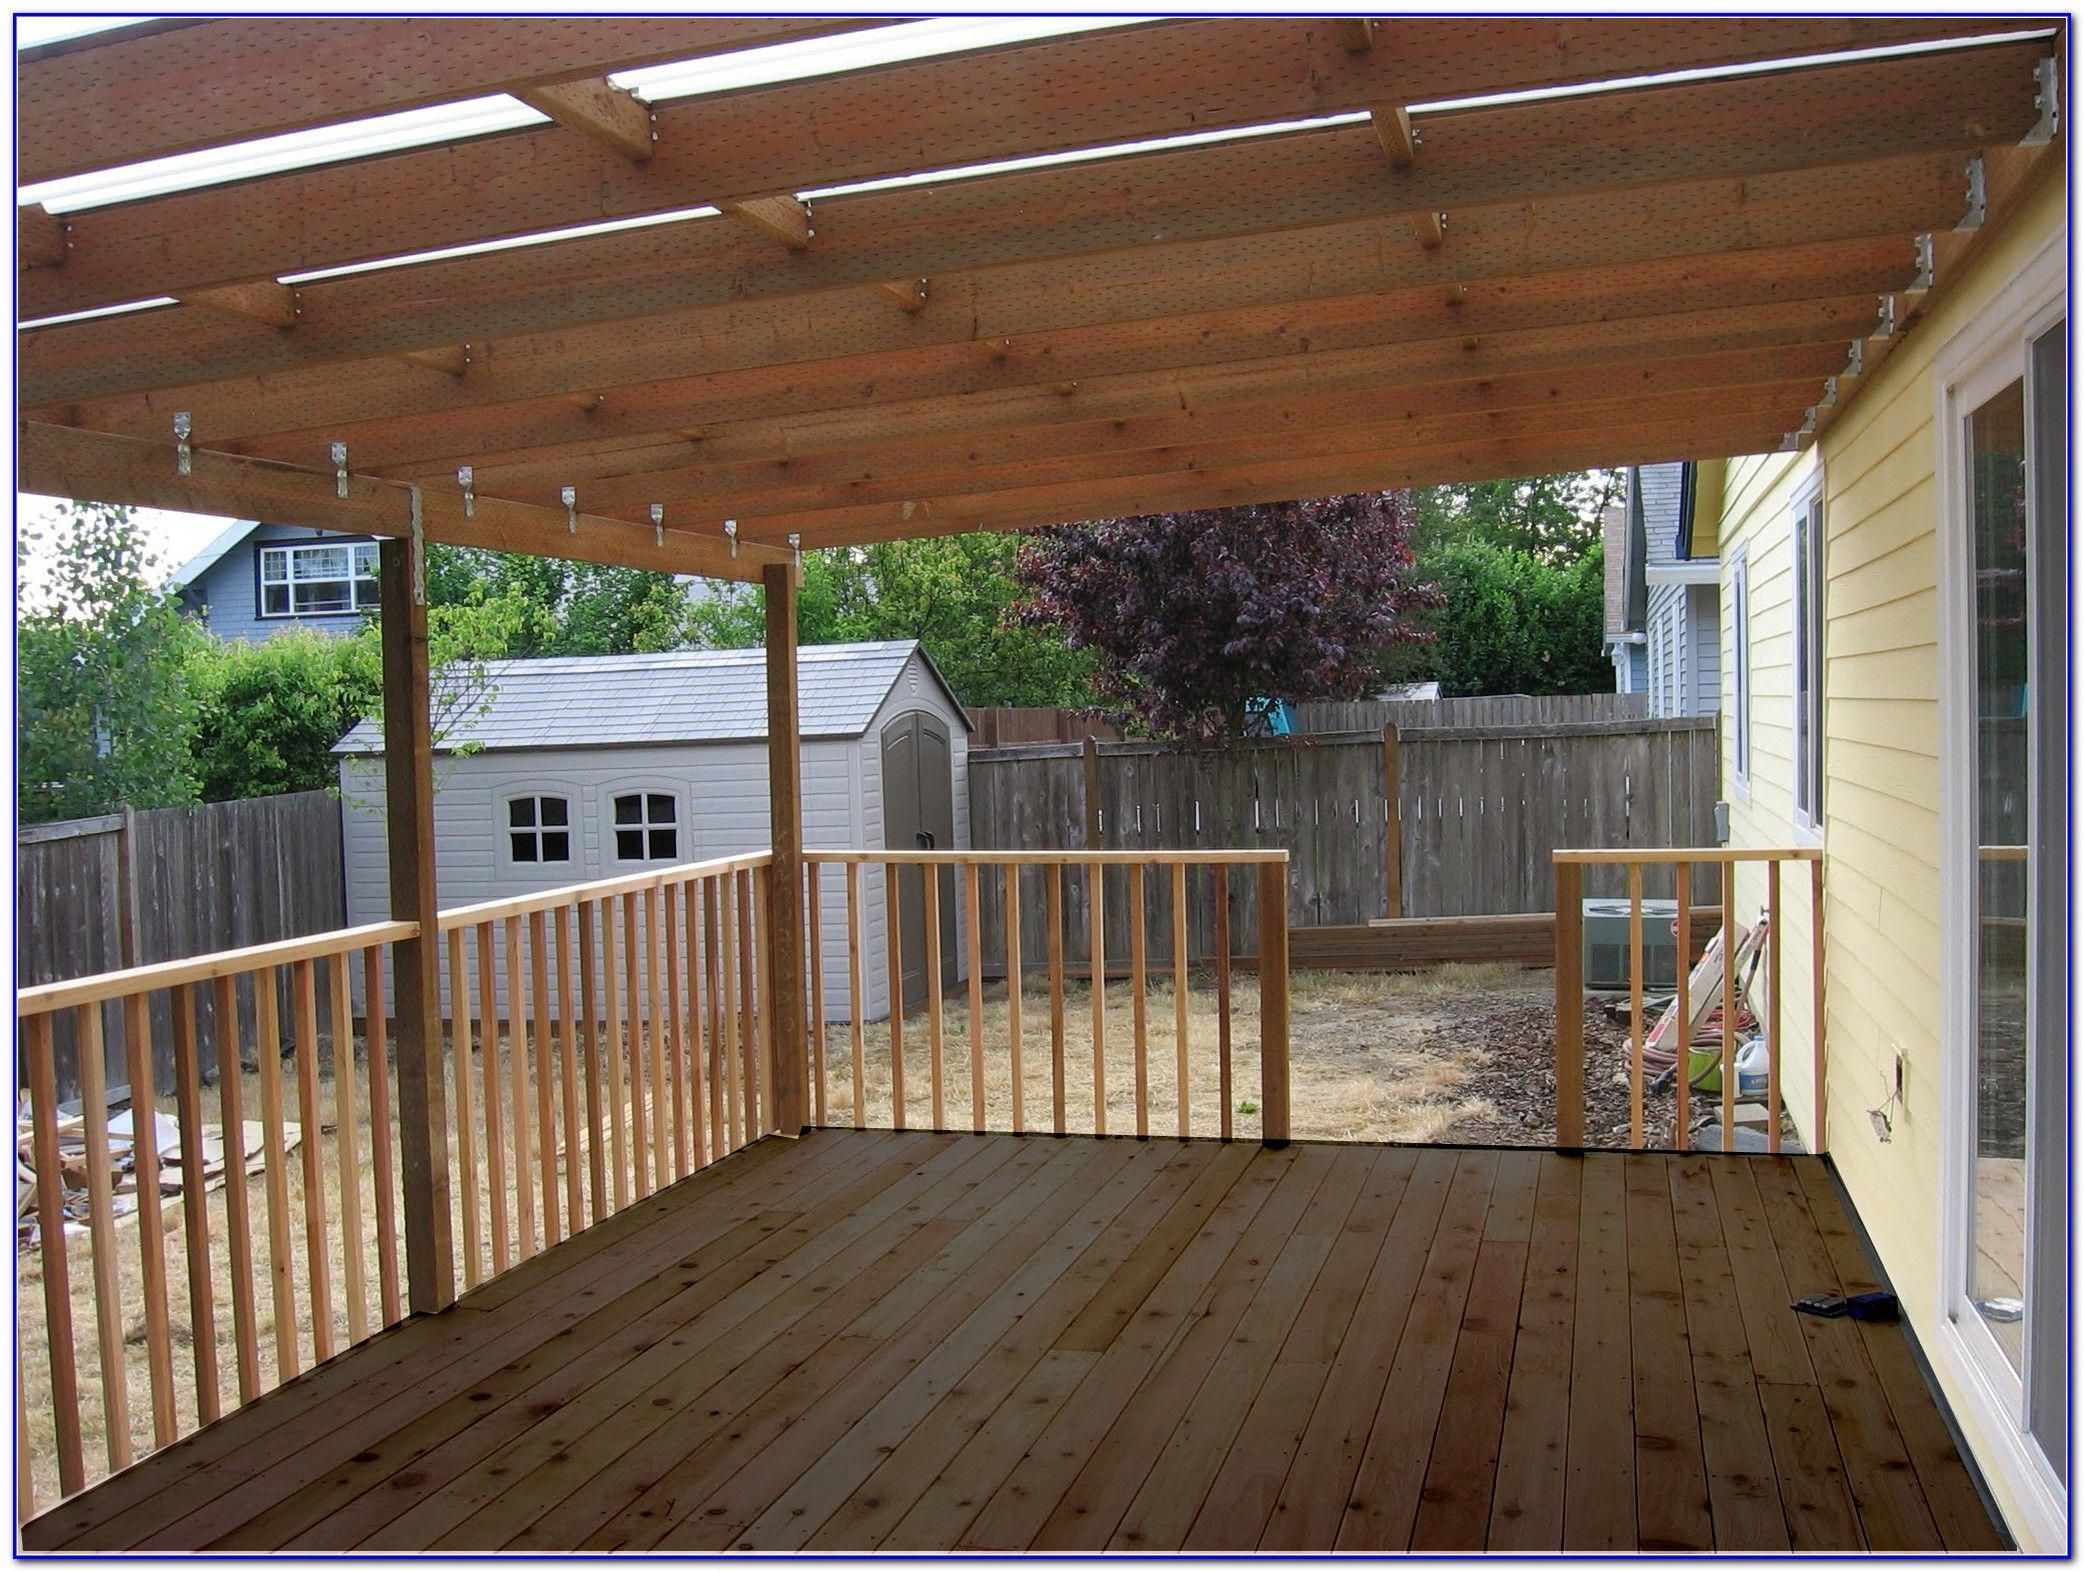 Covered Deck Designs Pictures Covered Deck Pictures Covered Deck Ideas On A Budget Roof Over Deck Covered Deck Designs Deck With Pergola Building A Deck